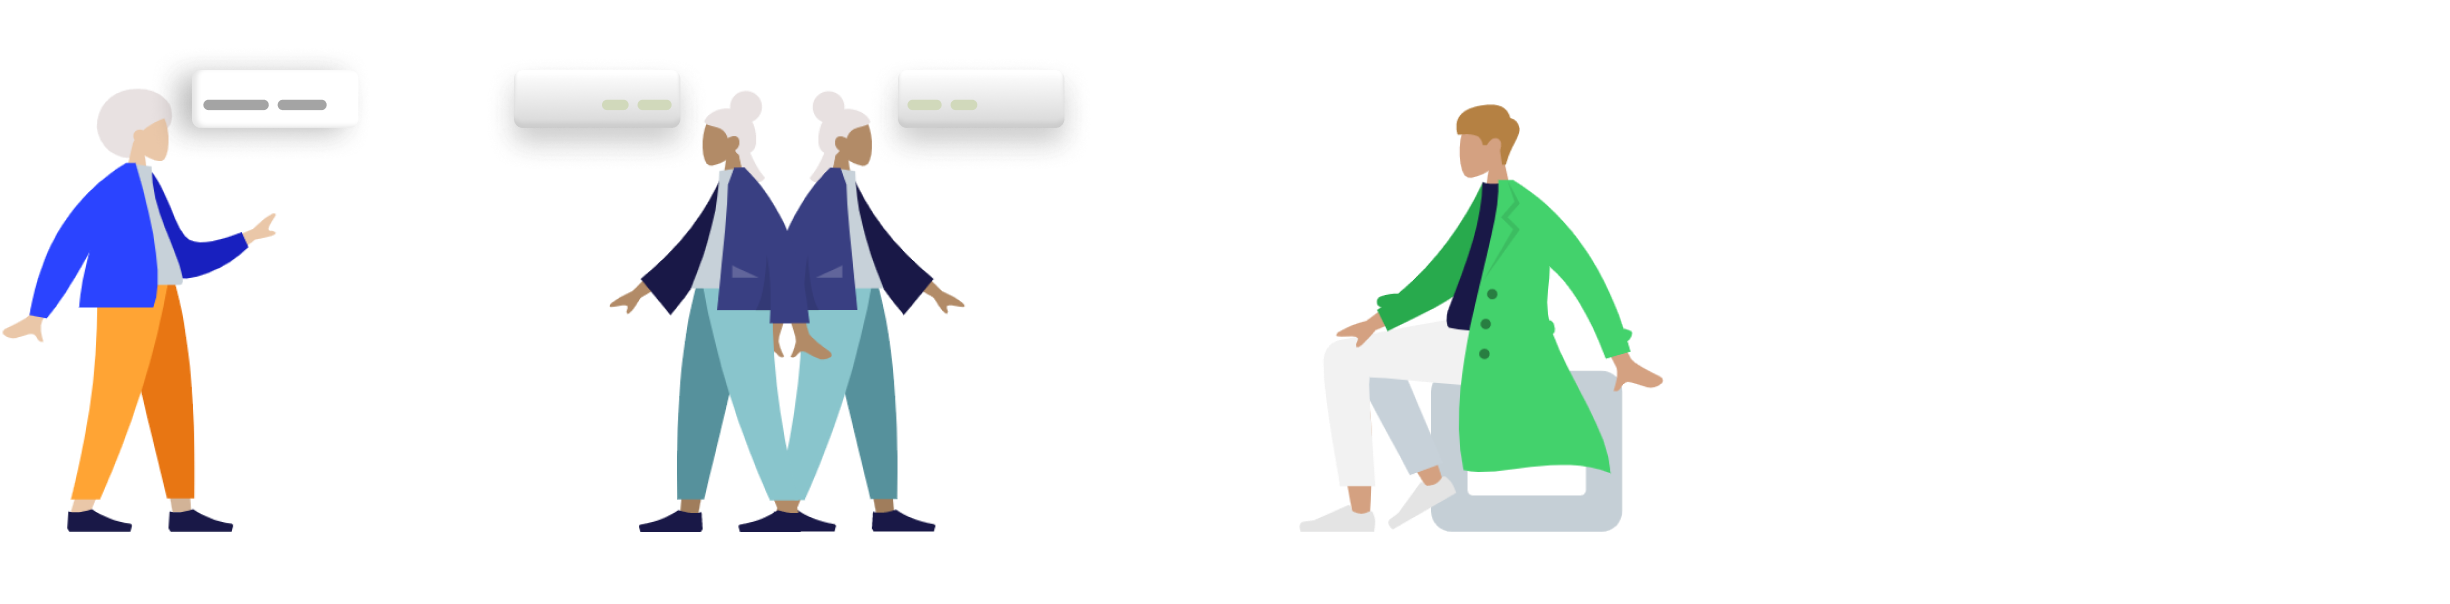 Section graphic. Shows the sales process